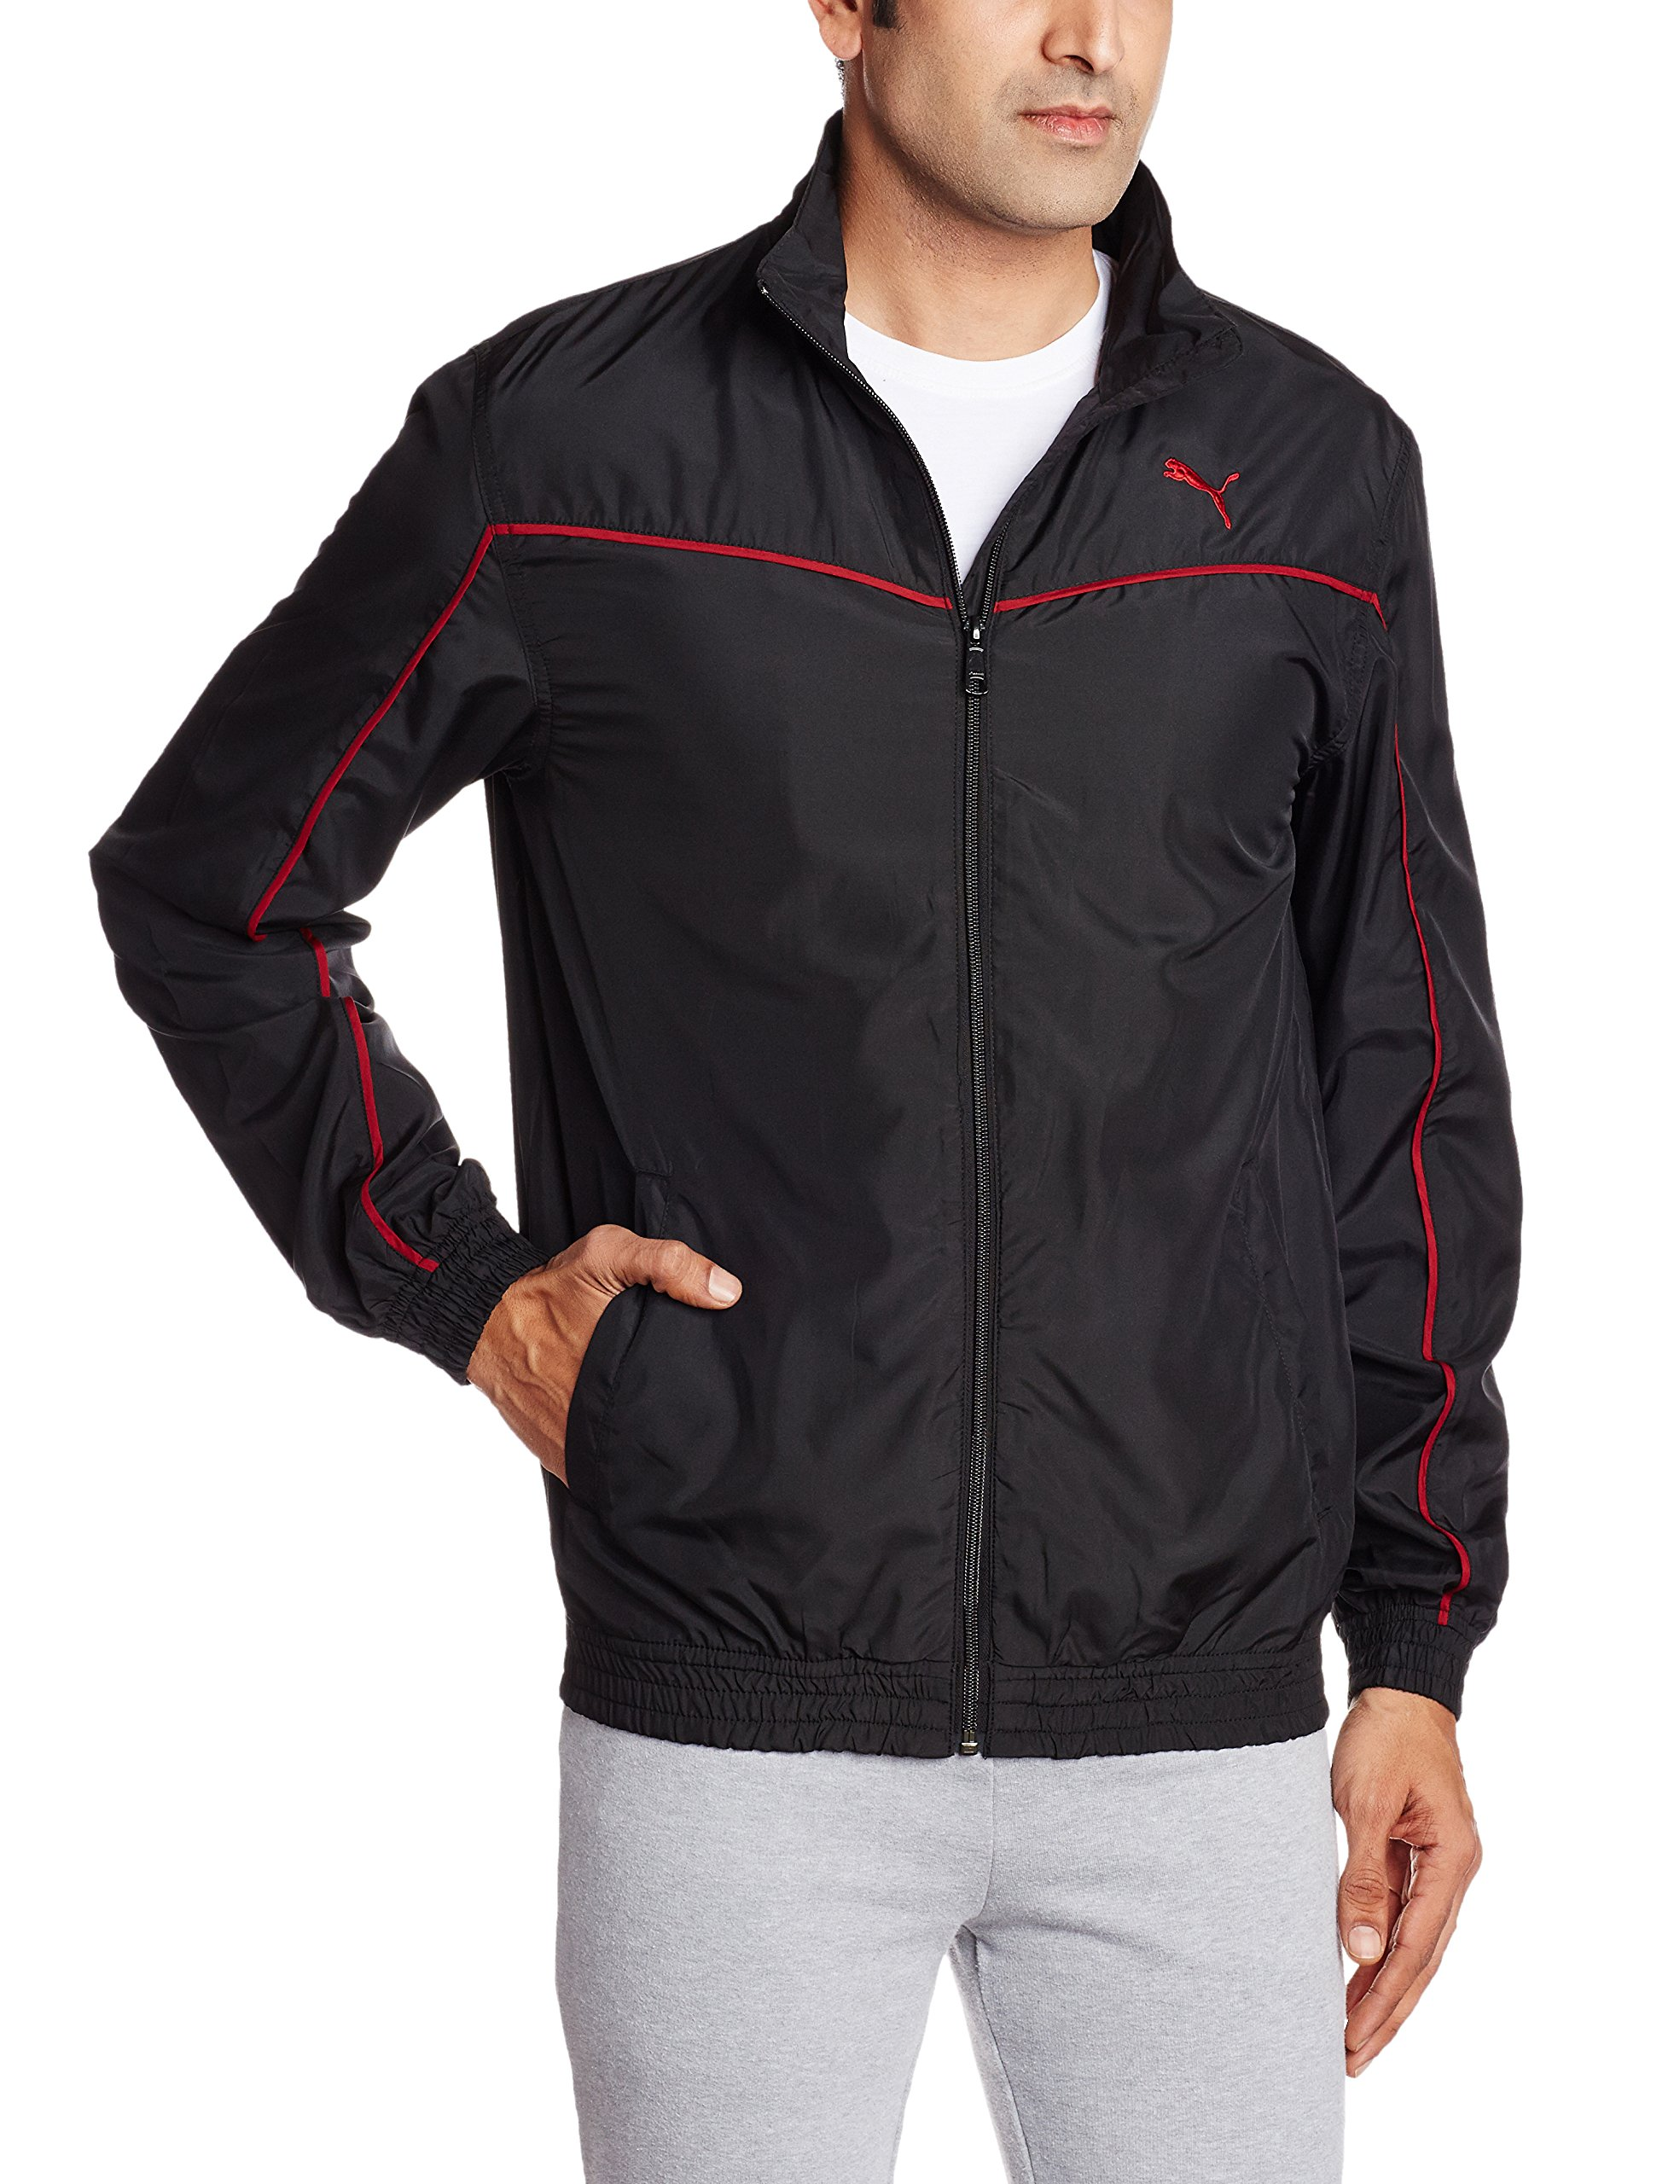 a92873a37a15 Best Rated in Men s Track Jackets   Helpful Customer Reviews - Amazon.in